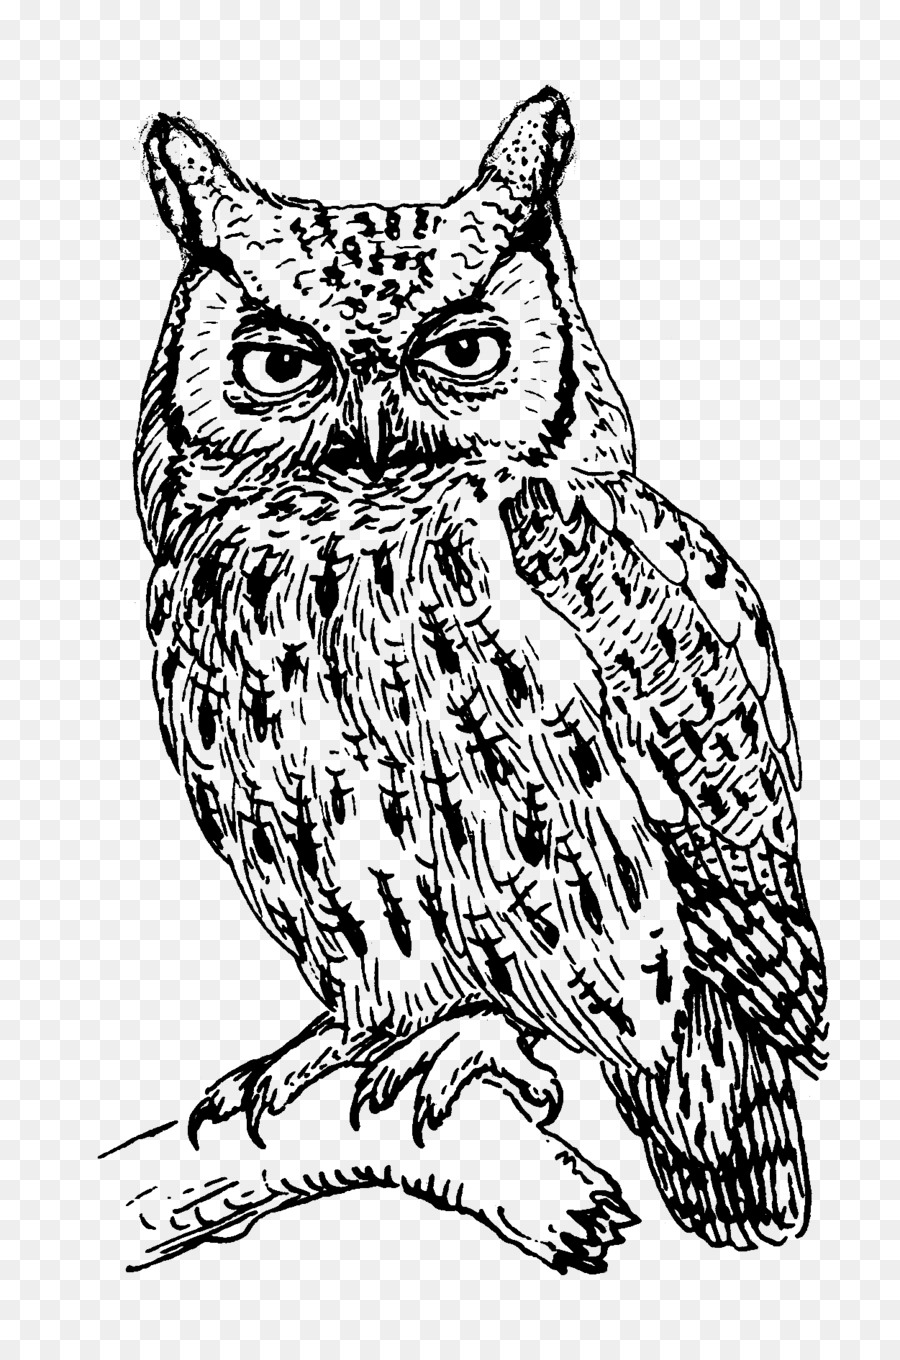 T Shirt Owl Clothing Crew Neck Line Drawing Png Download